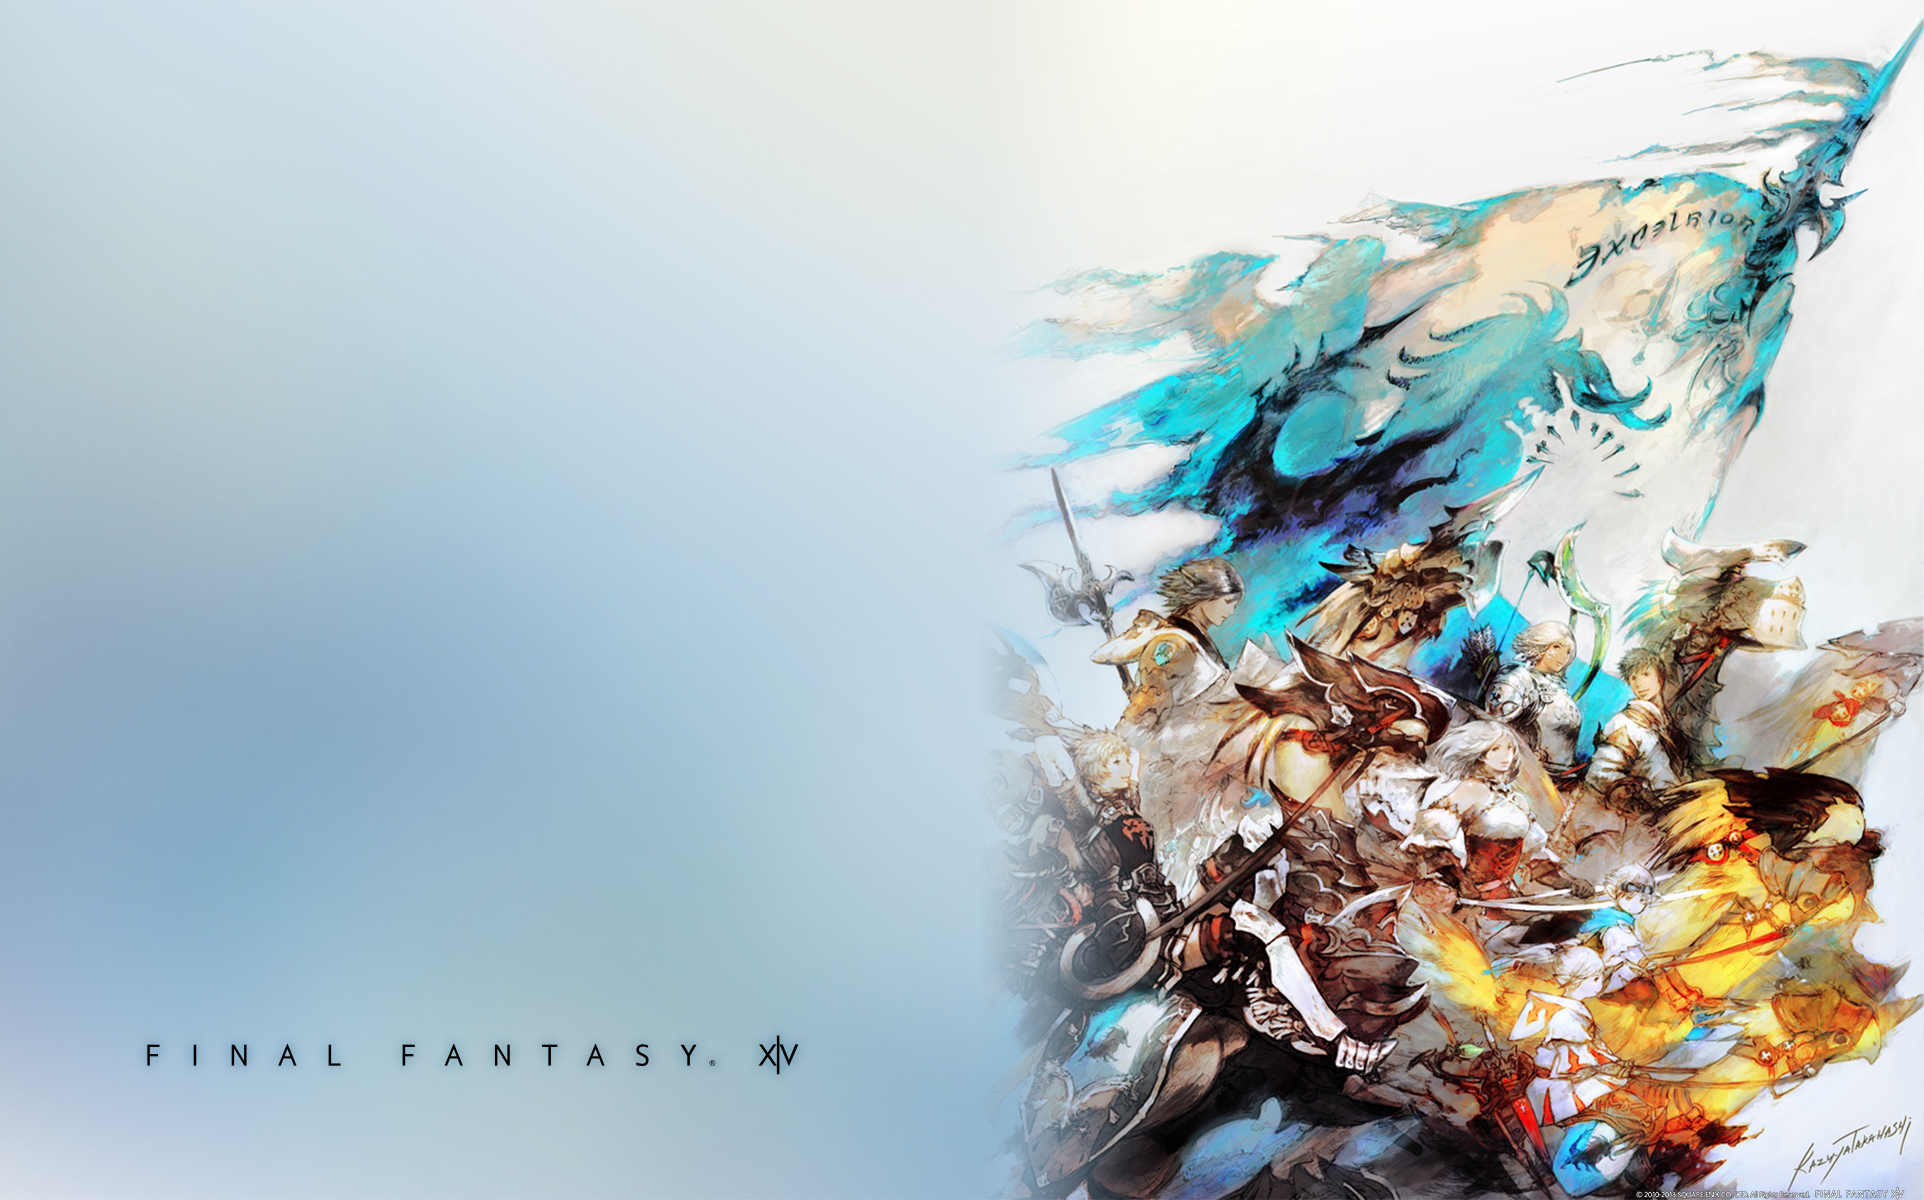 Final fantasy heavensward wallpaper 1080p pig head on a stick menu final fantasy heavensward wallpaper 1080p micromax mobile price in india 2013 with picture and features image amber color voltagebd Image collections